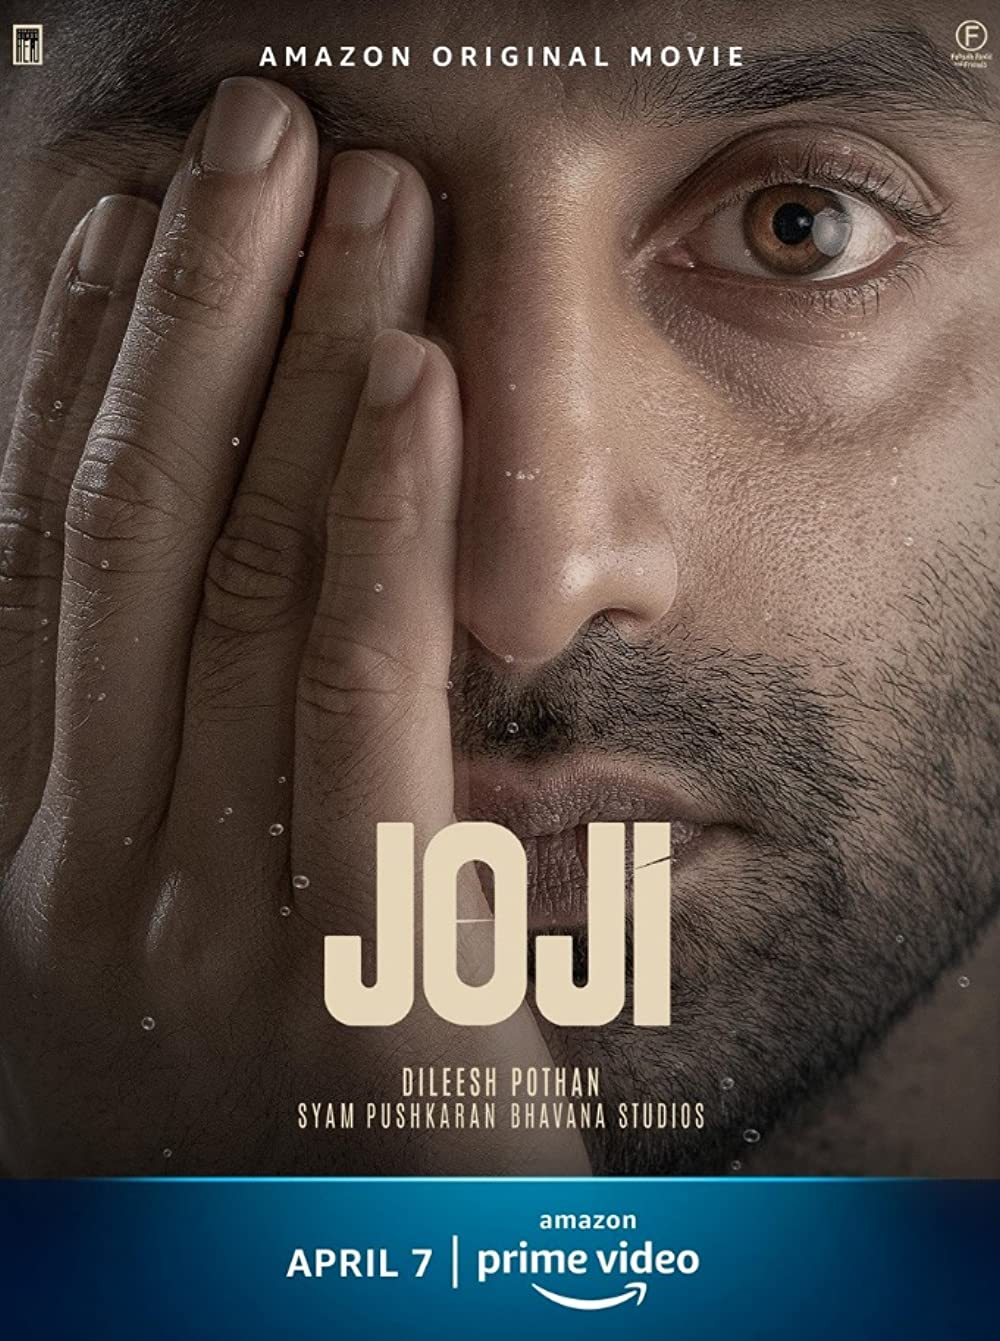 Joji 2021 Malayalam AMZN 720p Web-DL 900MB With Bangla Subtitle